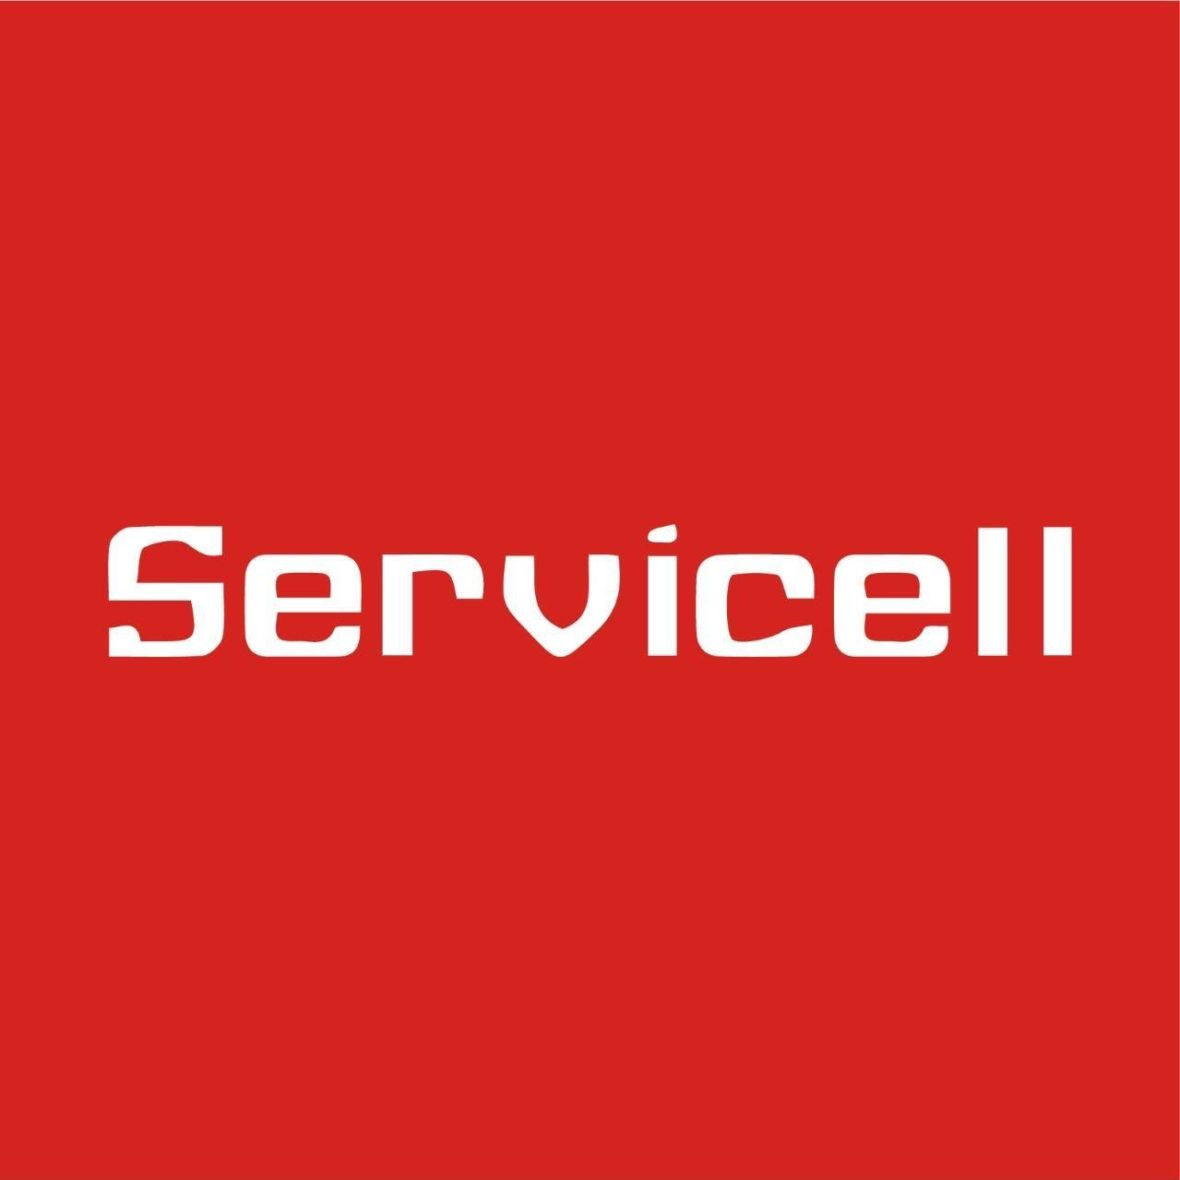 Servicell